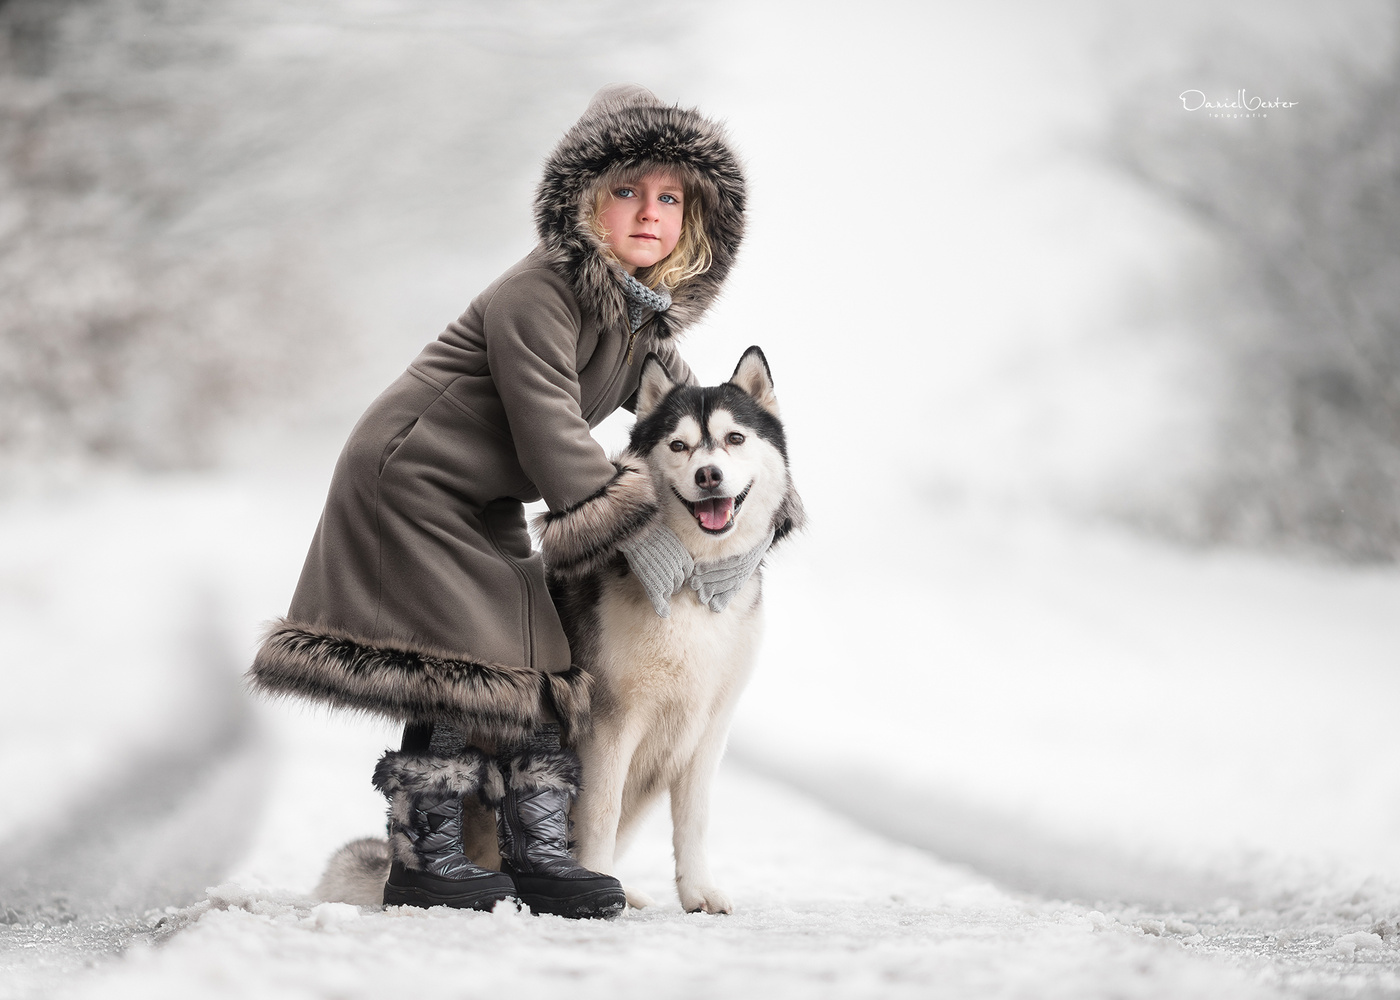 My Husky and I by Daniel Venter